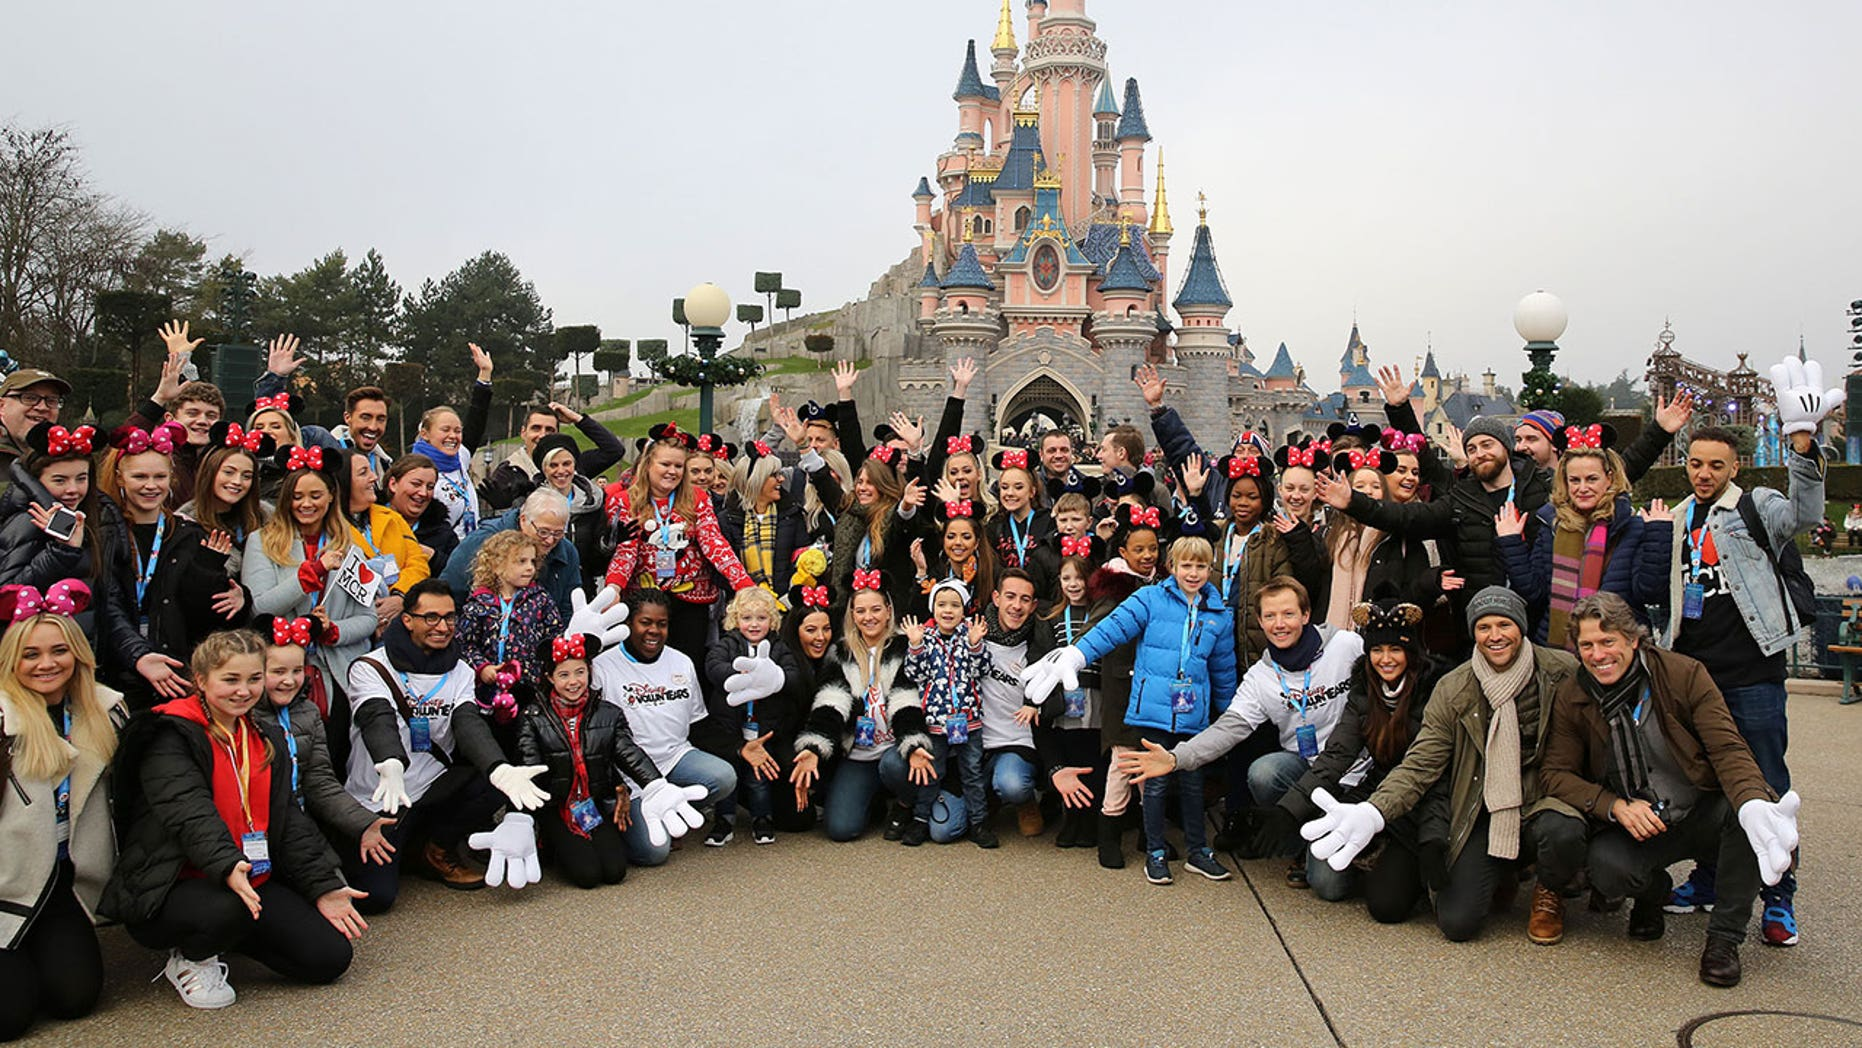 Young people and families who were affected by the Manchester Arena bombing in May were treated to pre-Christmas outing at Disneyland Paris.